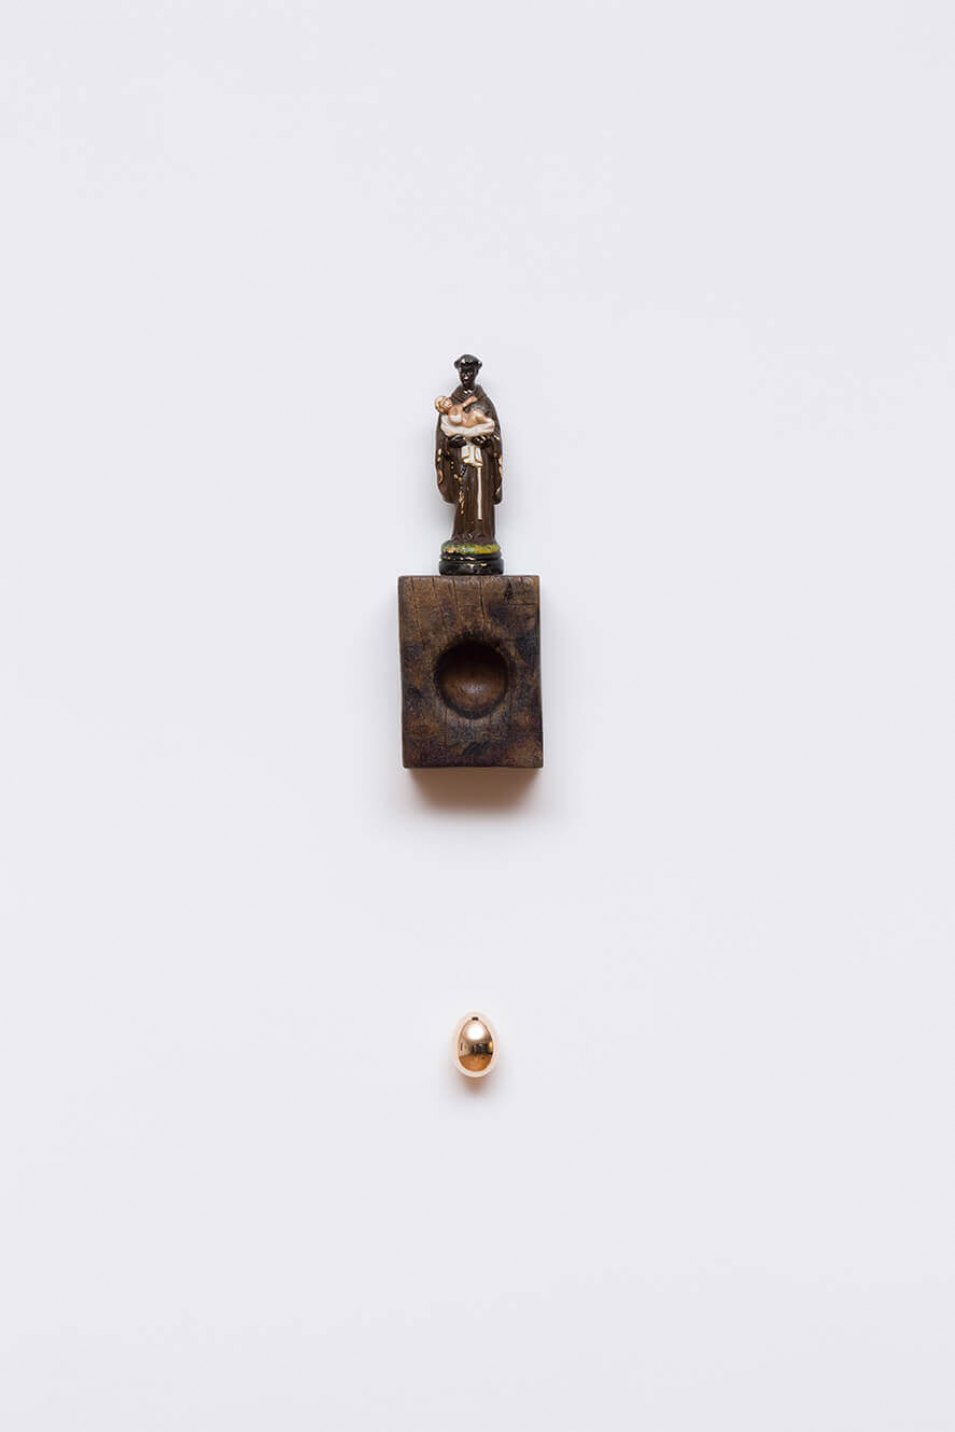 Antônio Obá, <em>Oratório I,</em> 2017, sculpture in plaster, wood pestle and bronze object, 60 × 12 cm - Mendes Wood DM